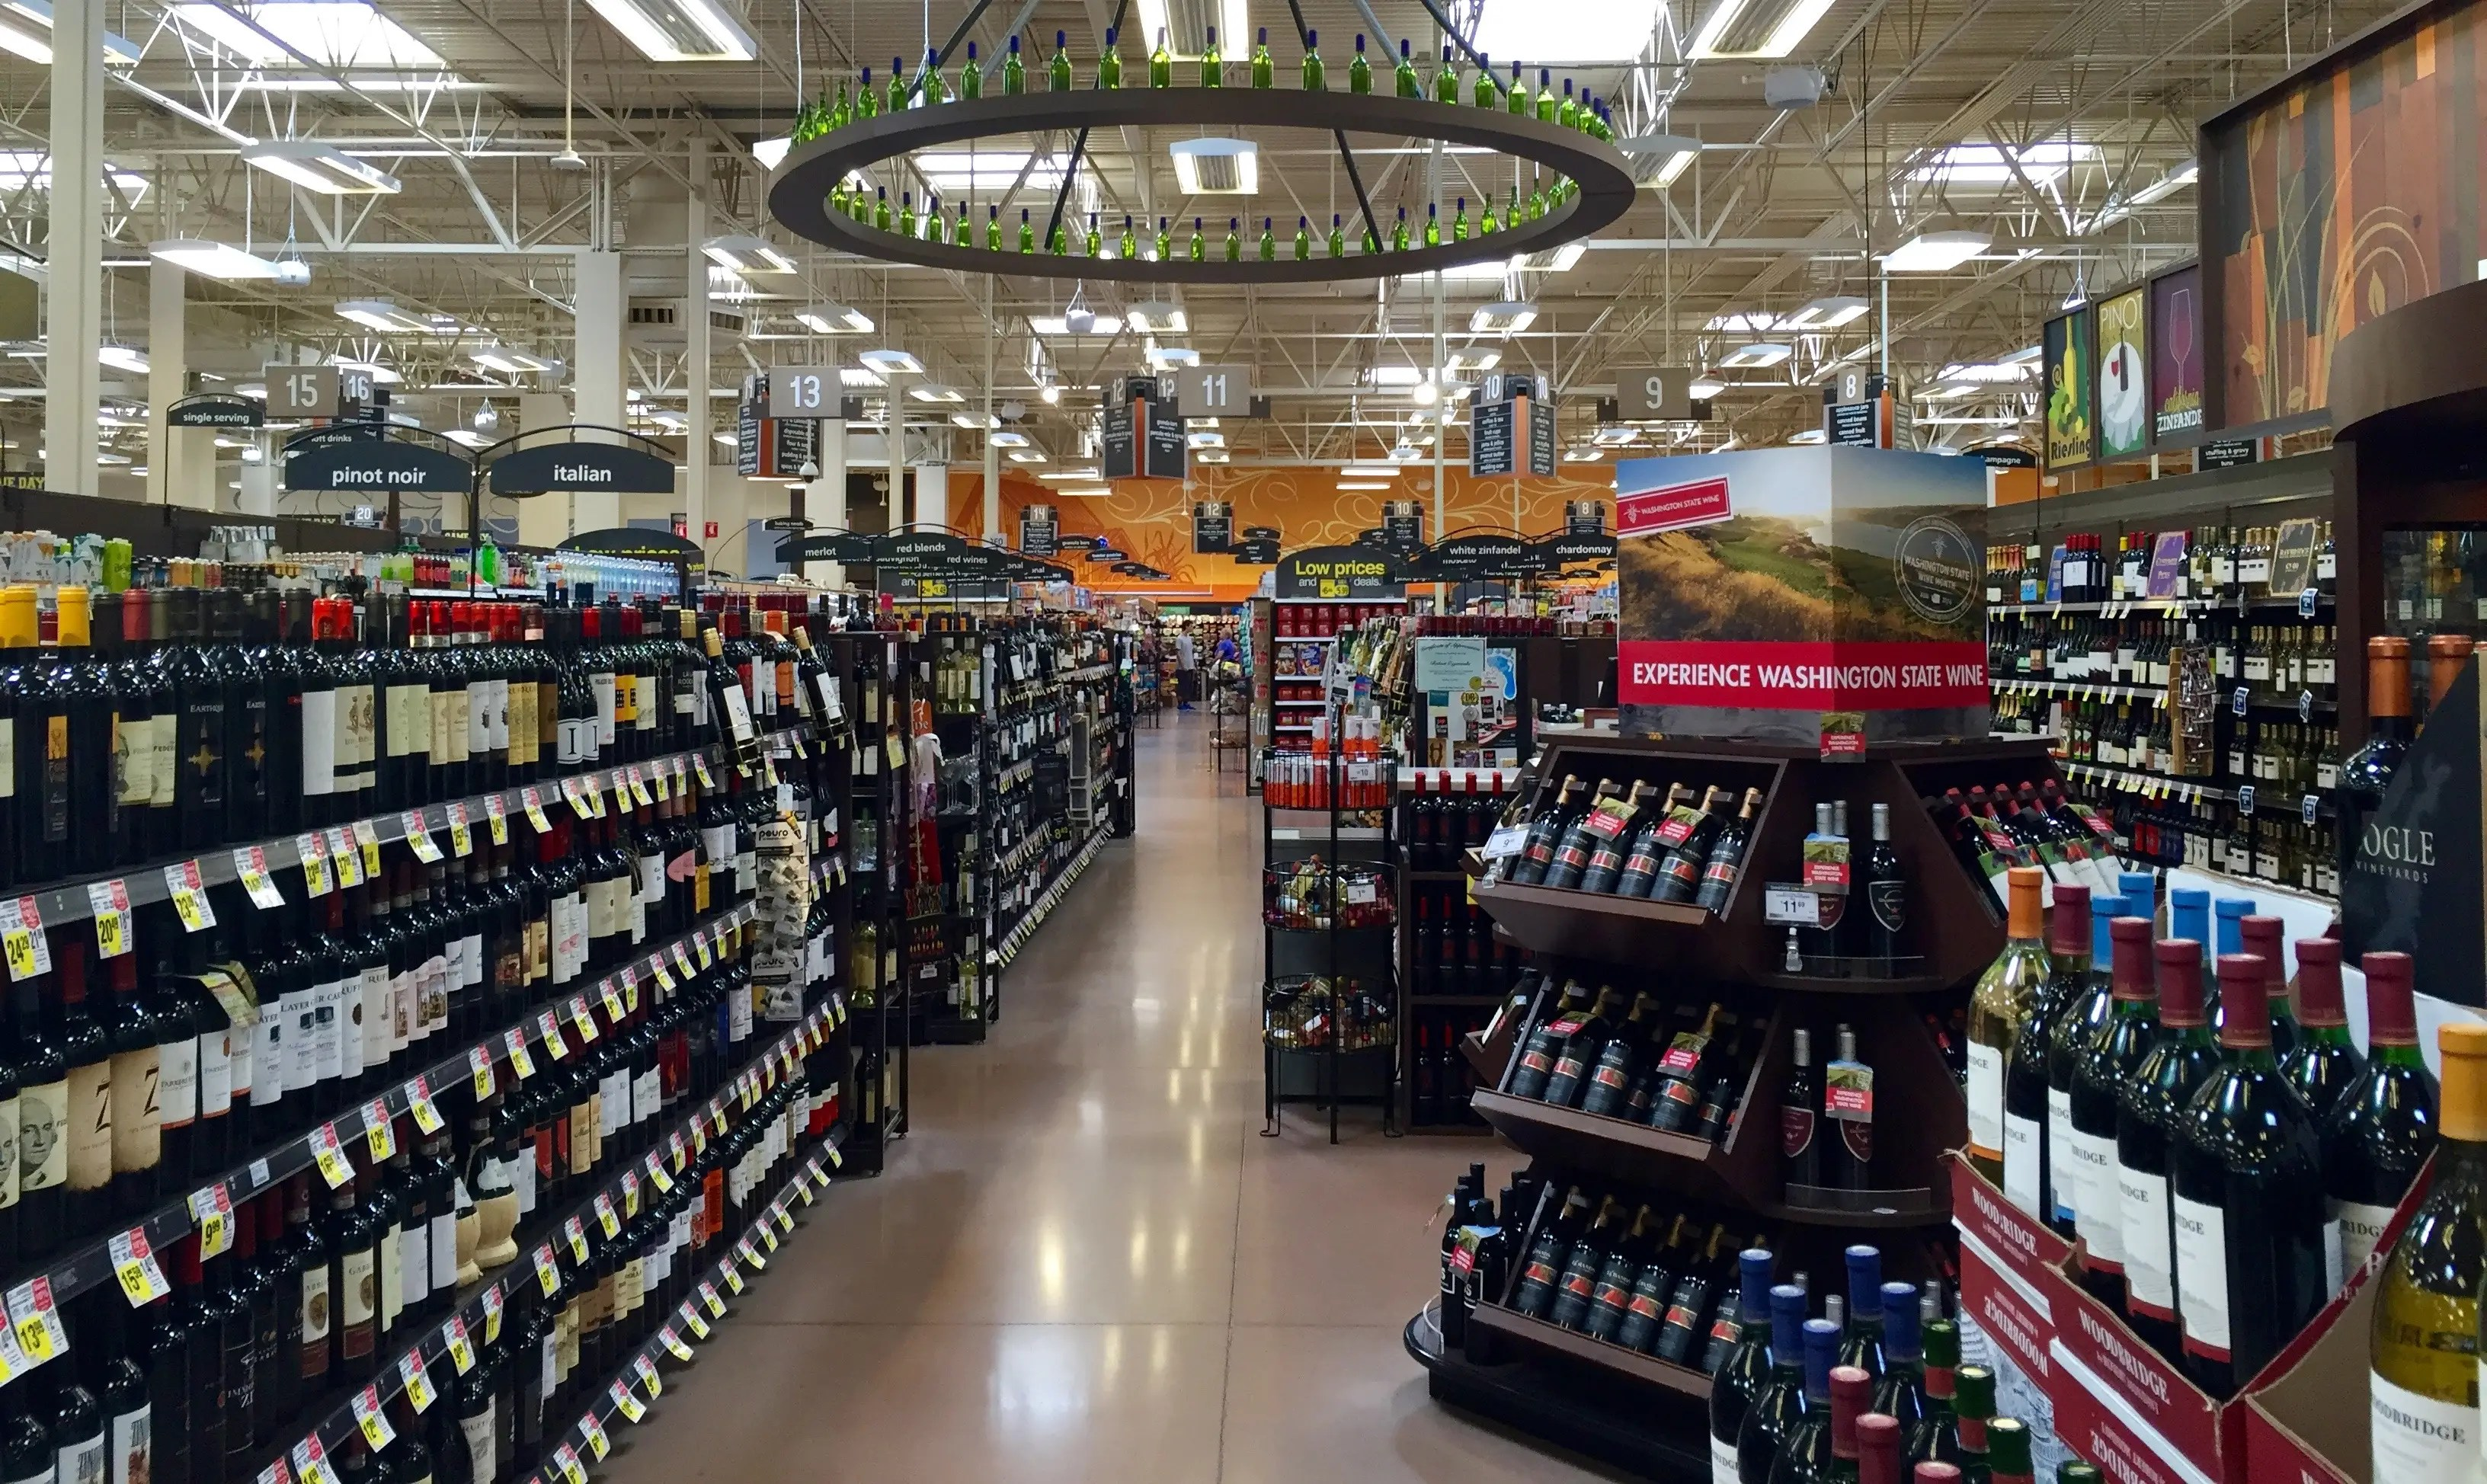 Back in the main part of the store, there's a giant wine selection that stretches across four aisles. This department features 500 types of beer and nearly 2,000 types of wine.